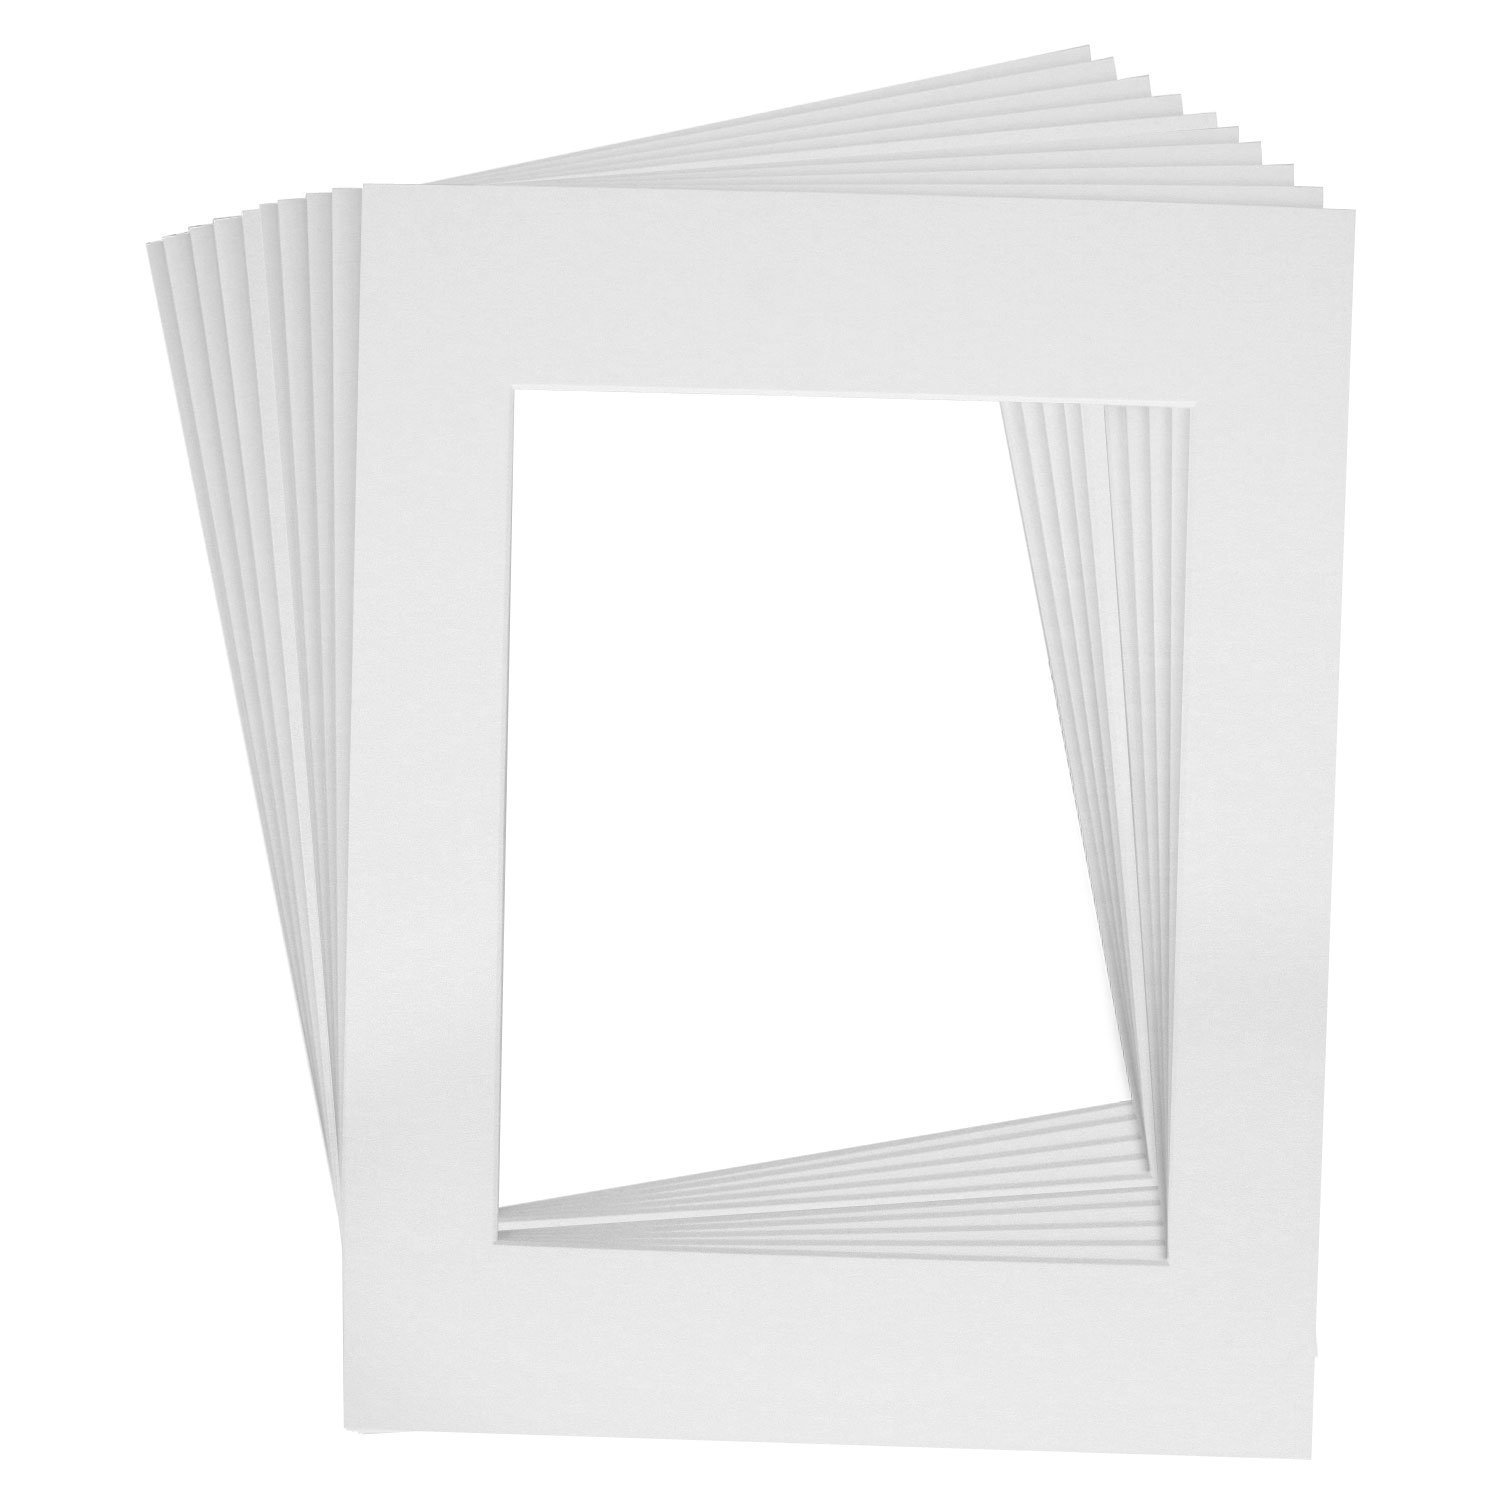 Mat Board Center, Acid-Free Pre-Cut 16x20 White Picture Mat Set. Includes a Pack of 10 White Core Bevel Cut Mattes for 11x14 Photos, Backers & Clear Bags